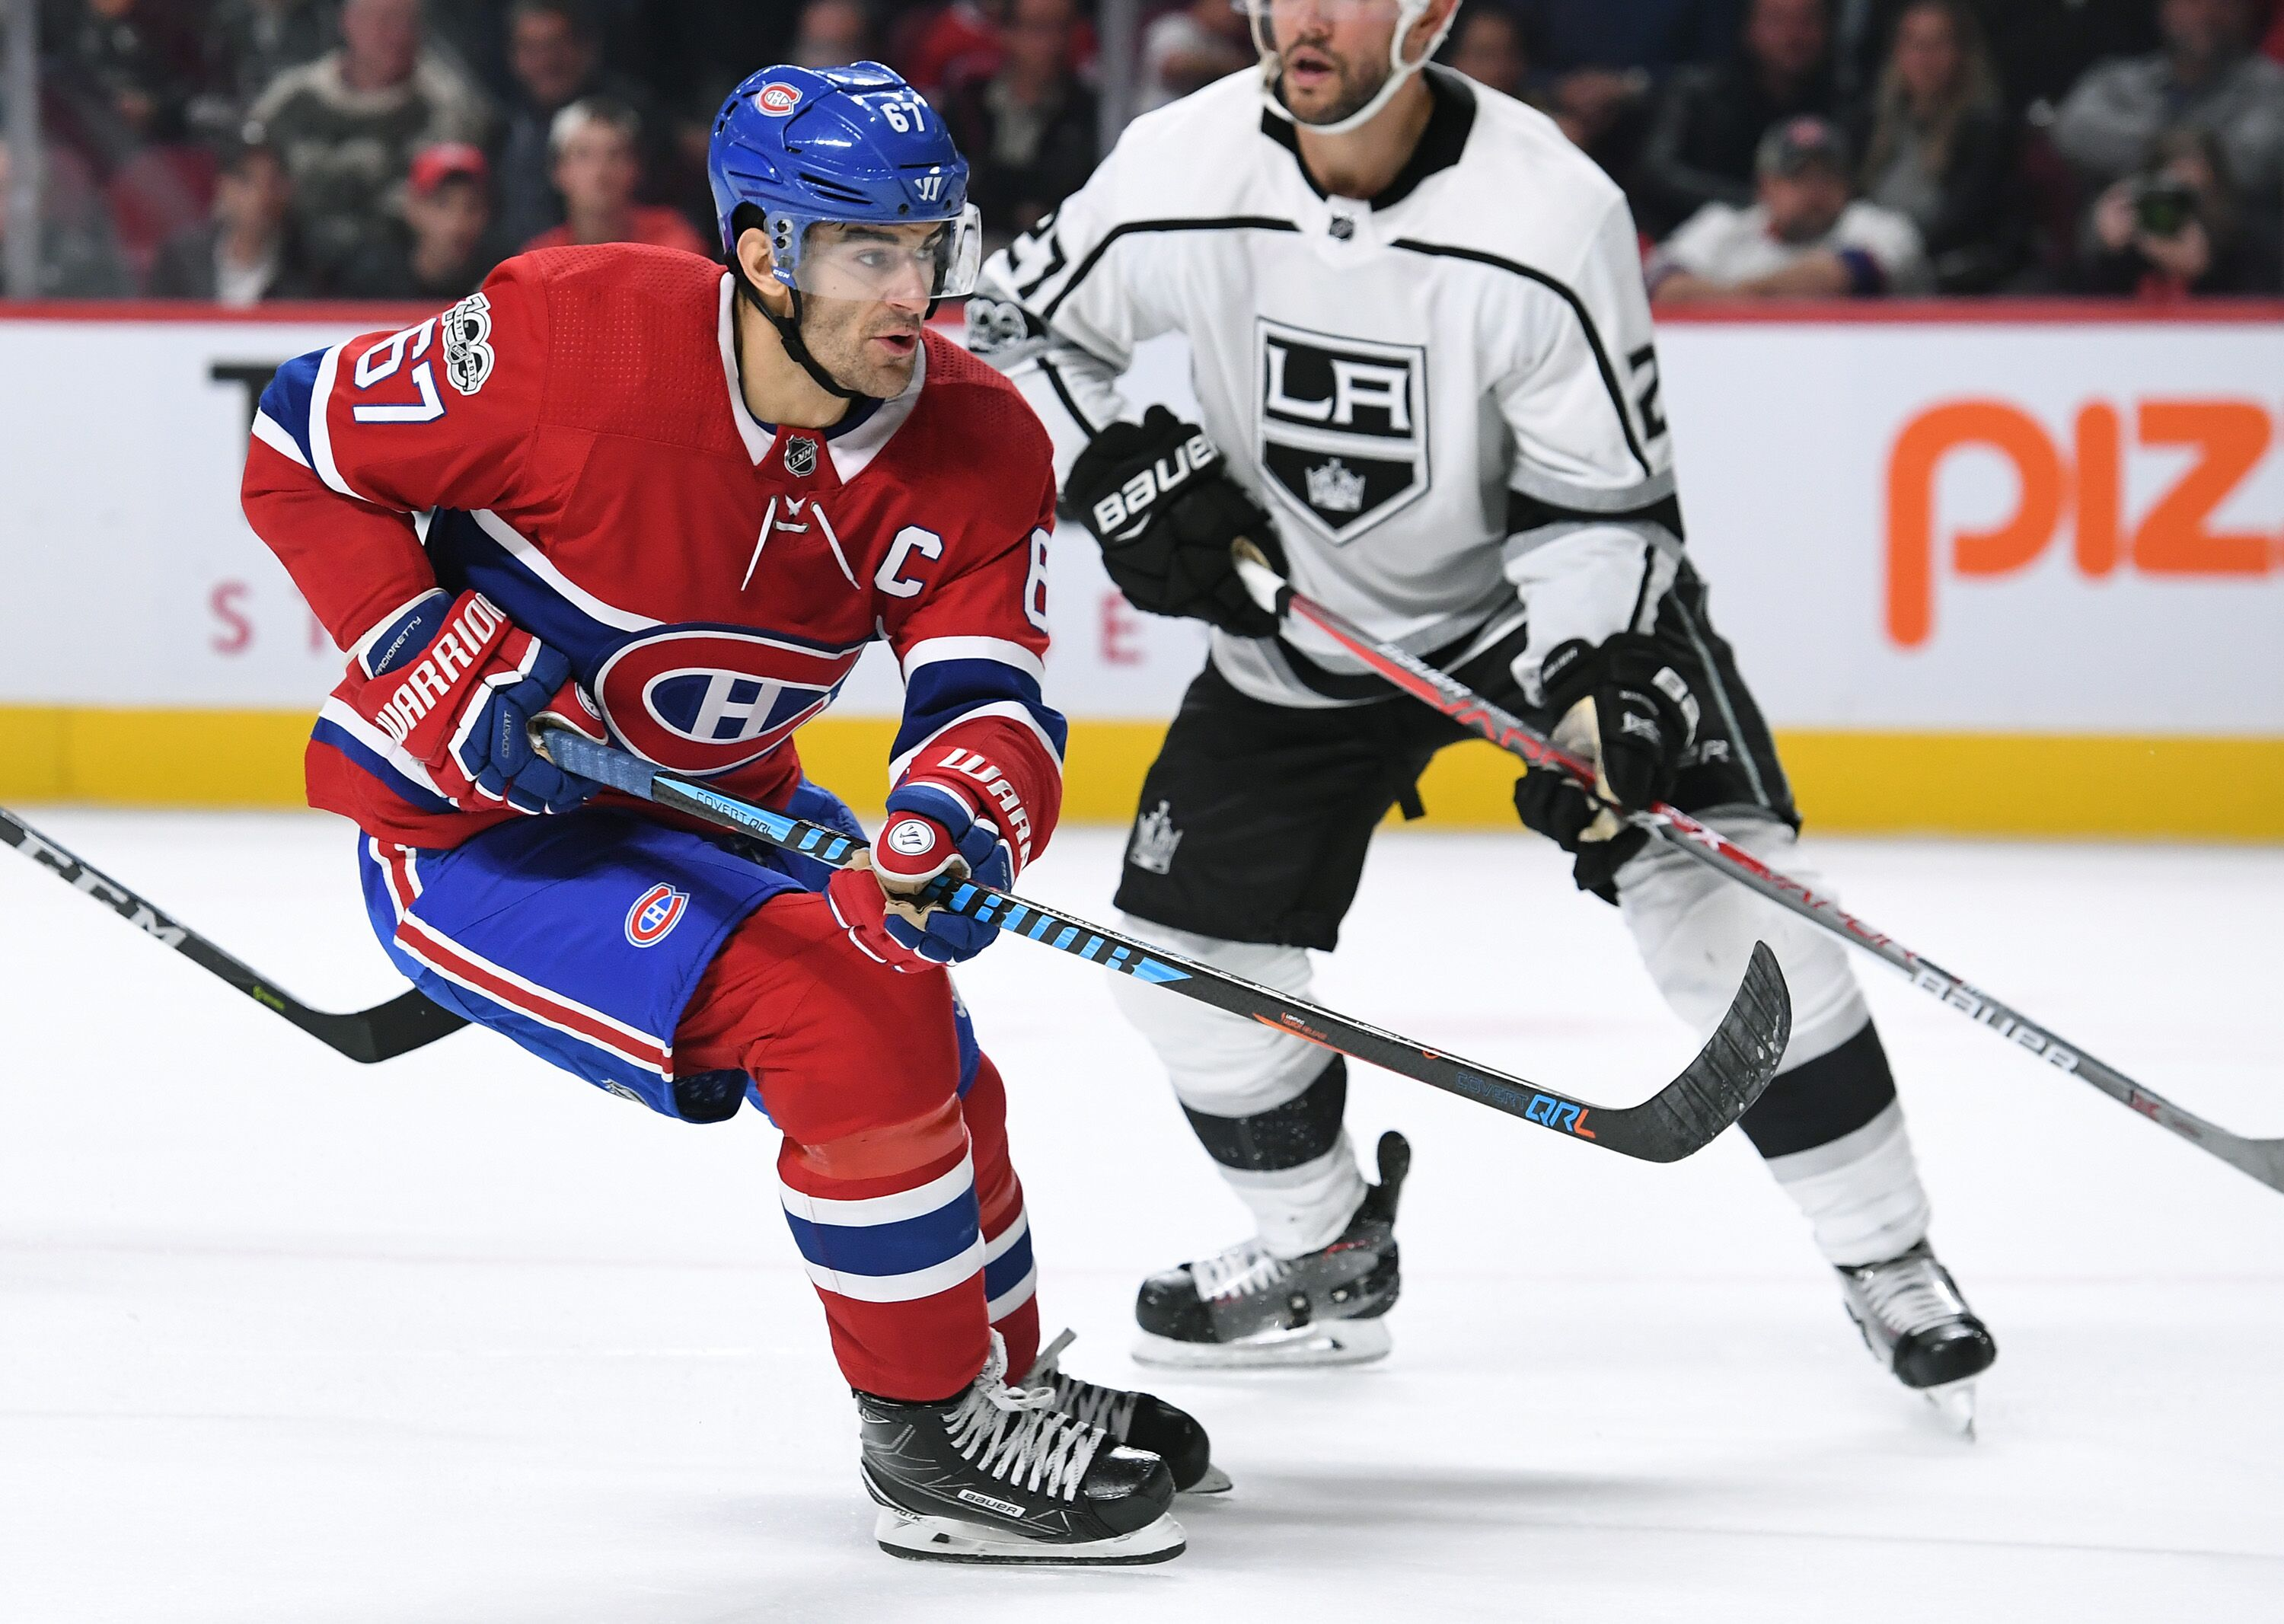 868168878-los-angeles-kings-v-montreal-canadiens.jpg